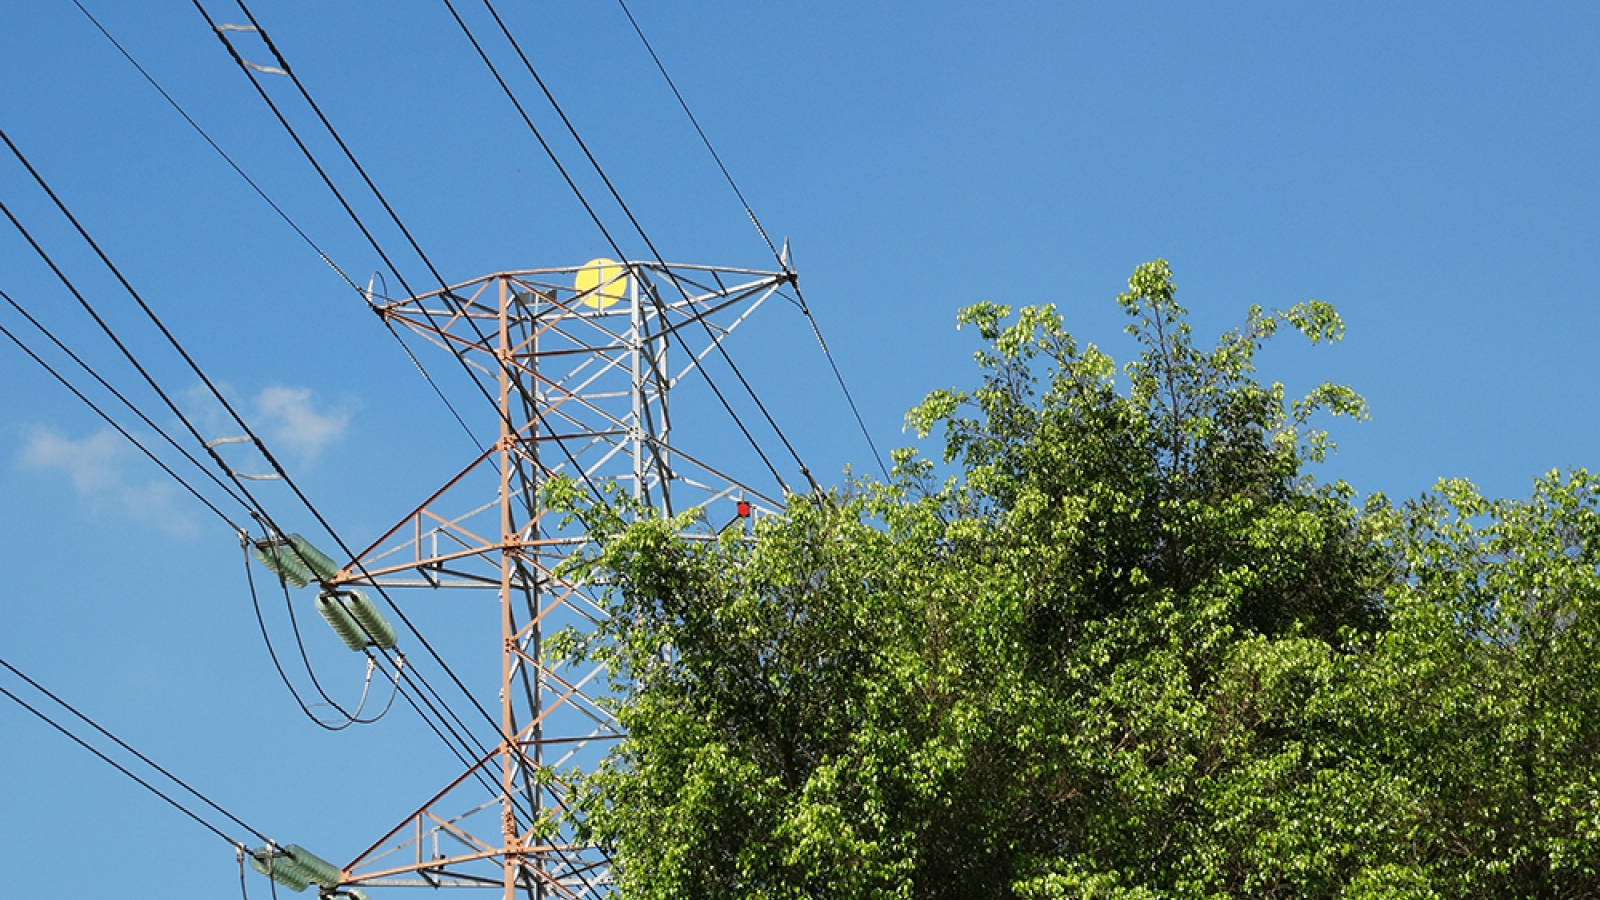 transmission tower with a tree in the foreground